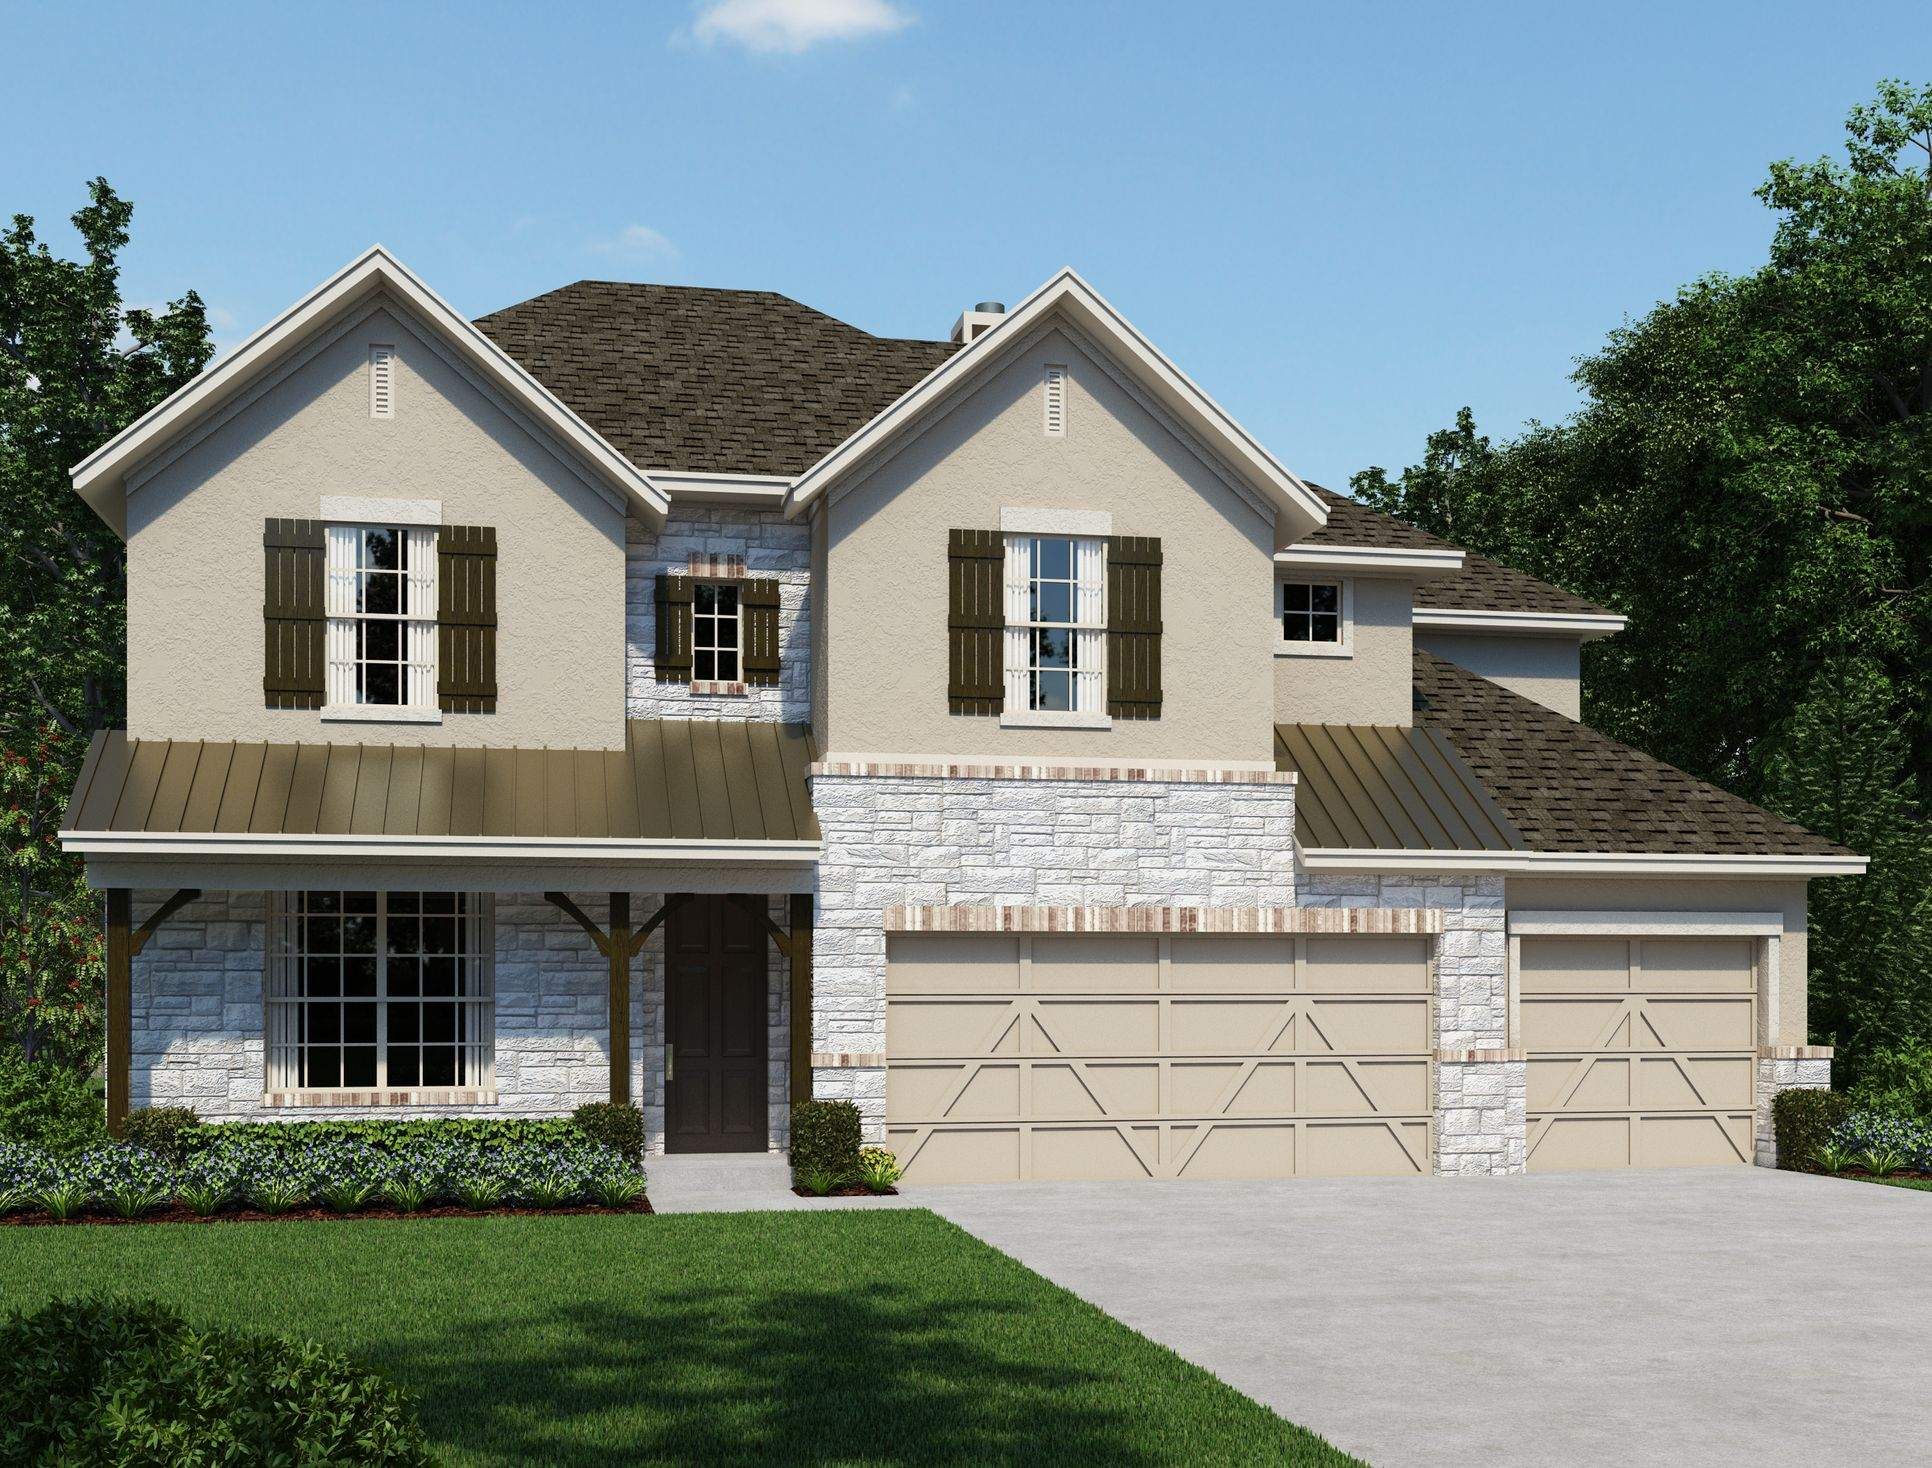 Exterior:The Estates at Stone Crossing - Procaccino  Elevation Image 1